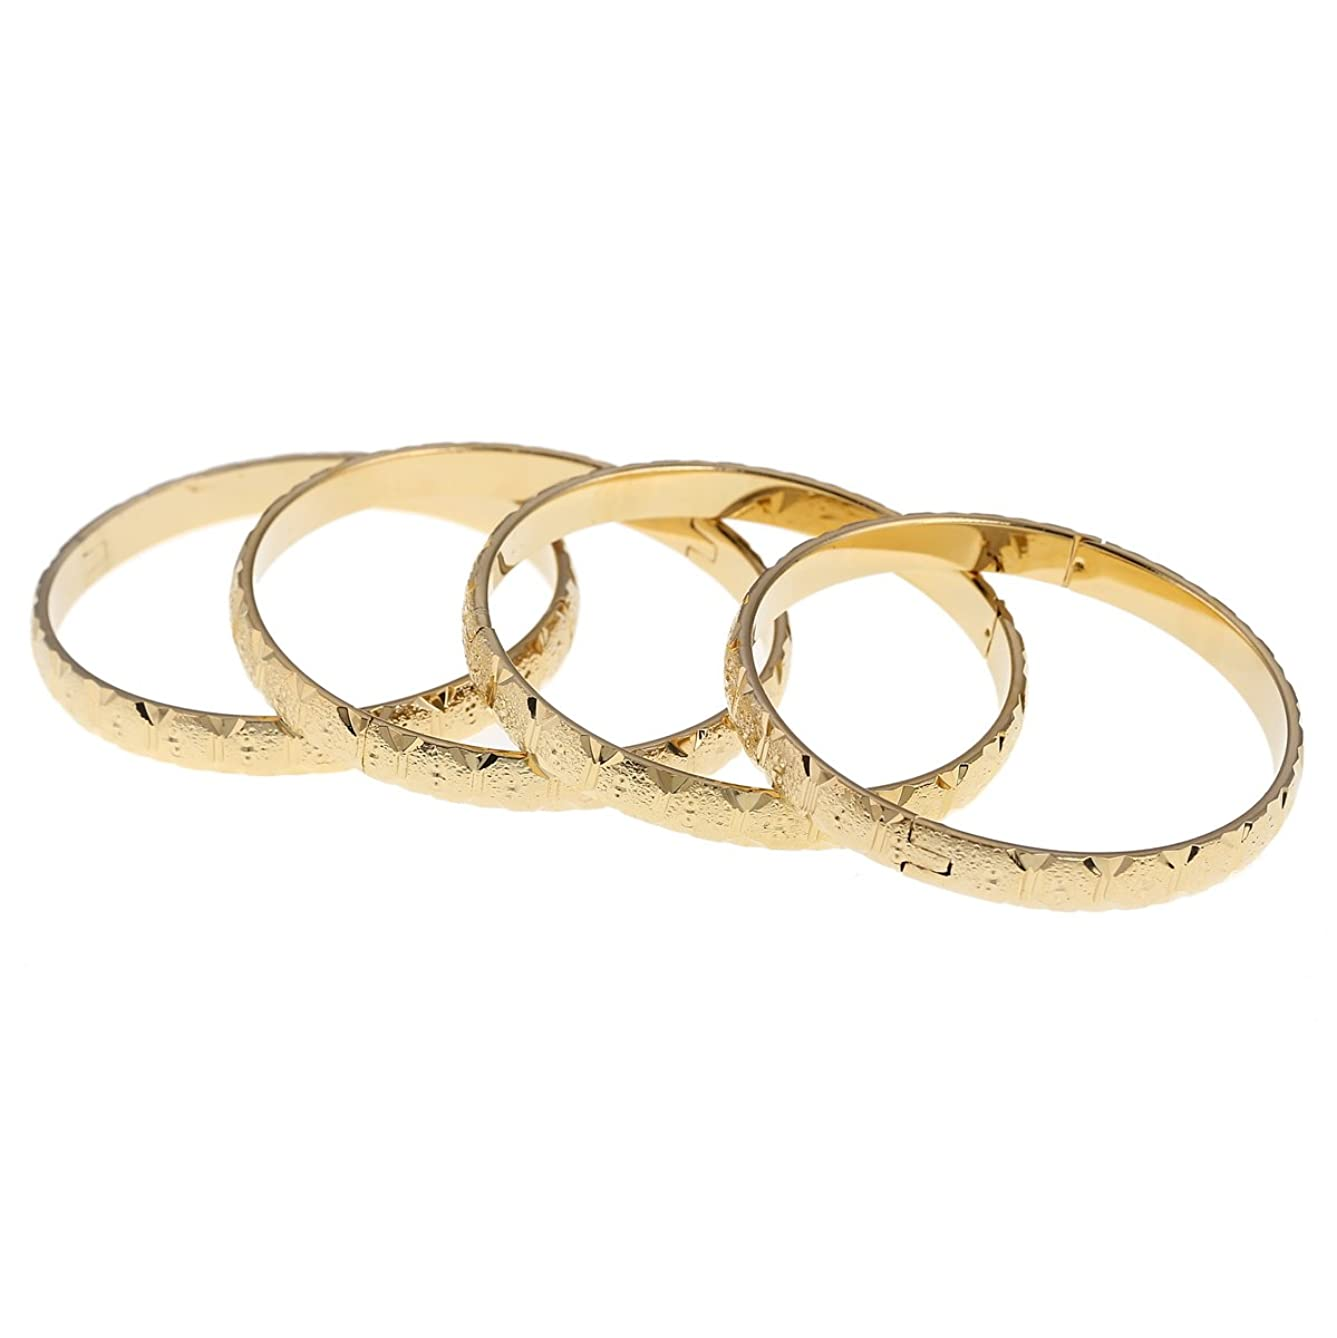 Openable Dubai Gold Bangles 8mm Width Women Men 4pcs Gold European Bracelets